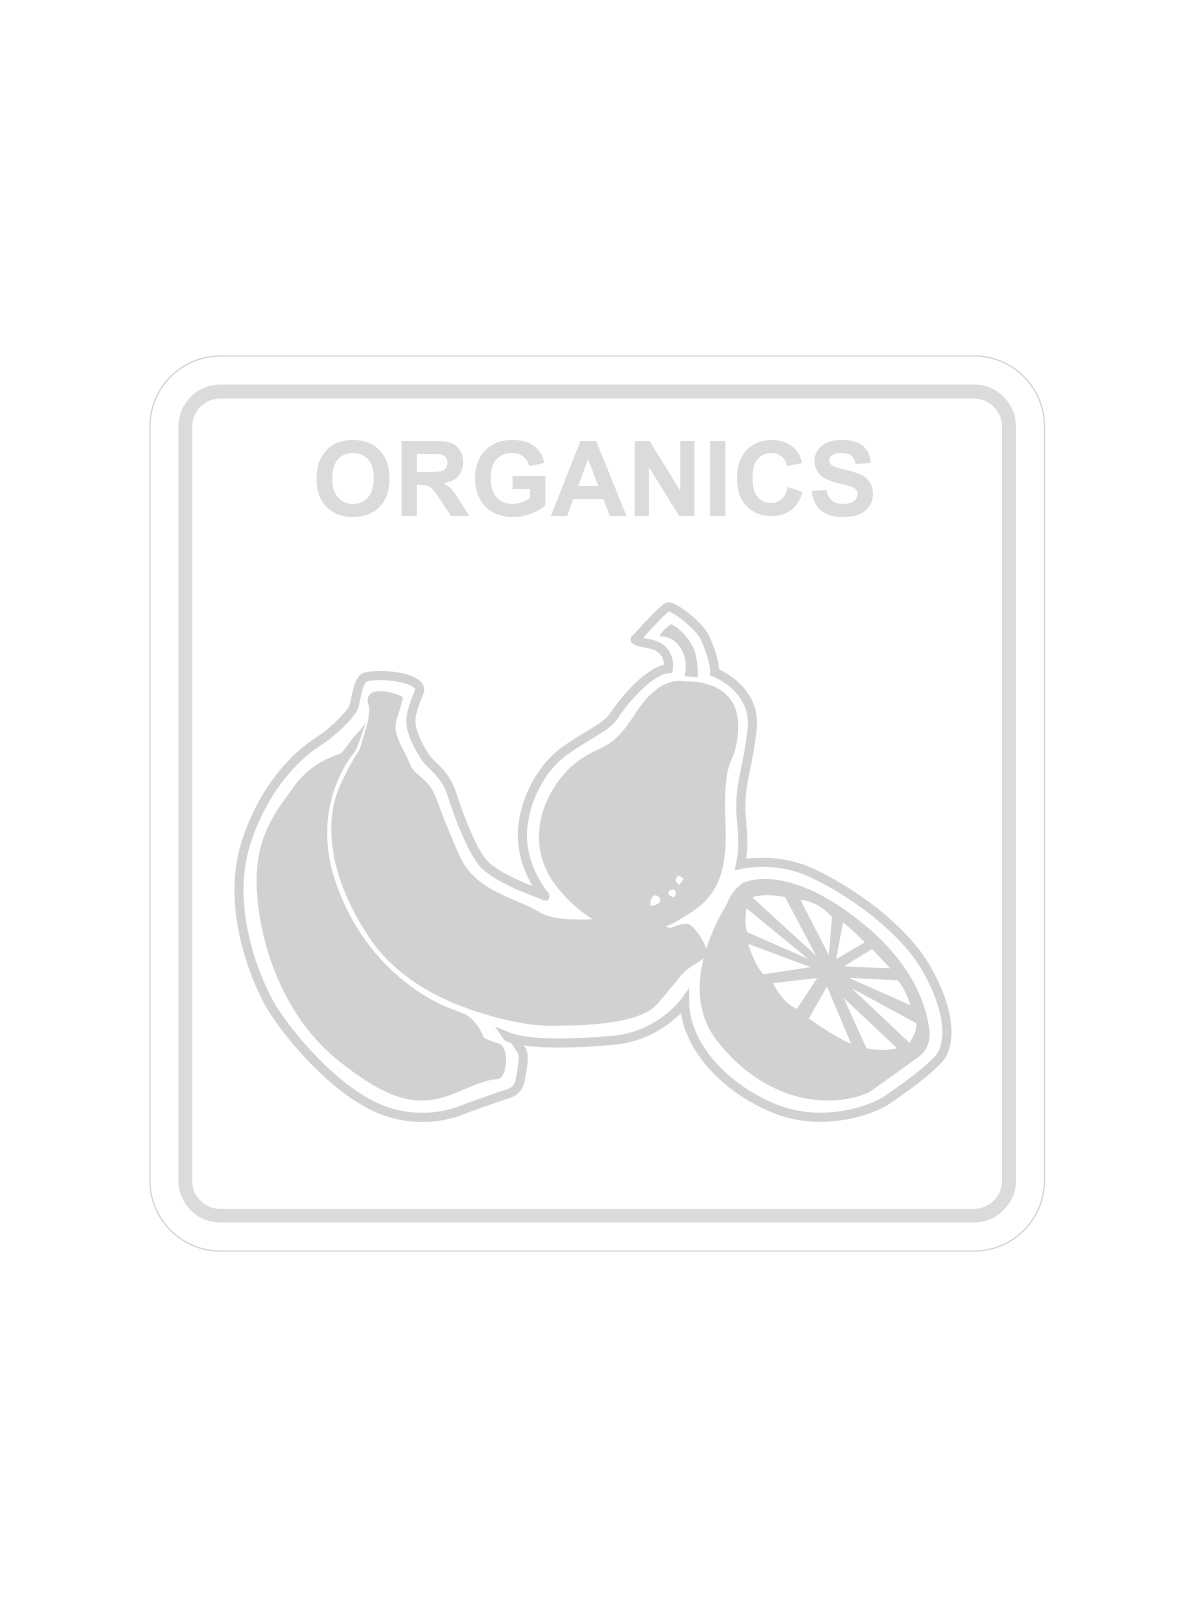 WASTE WATCHER - Label - Organics - Clear-White